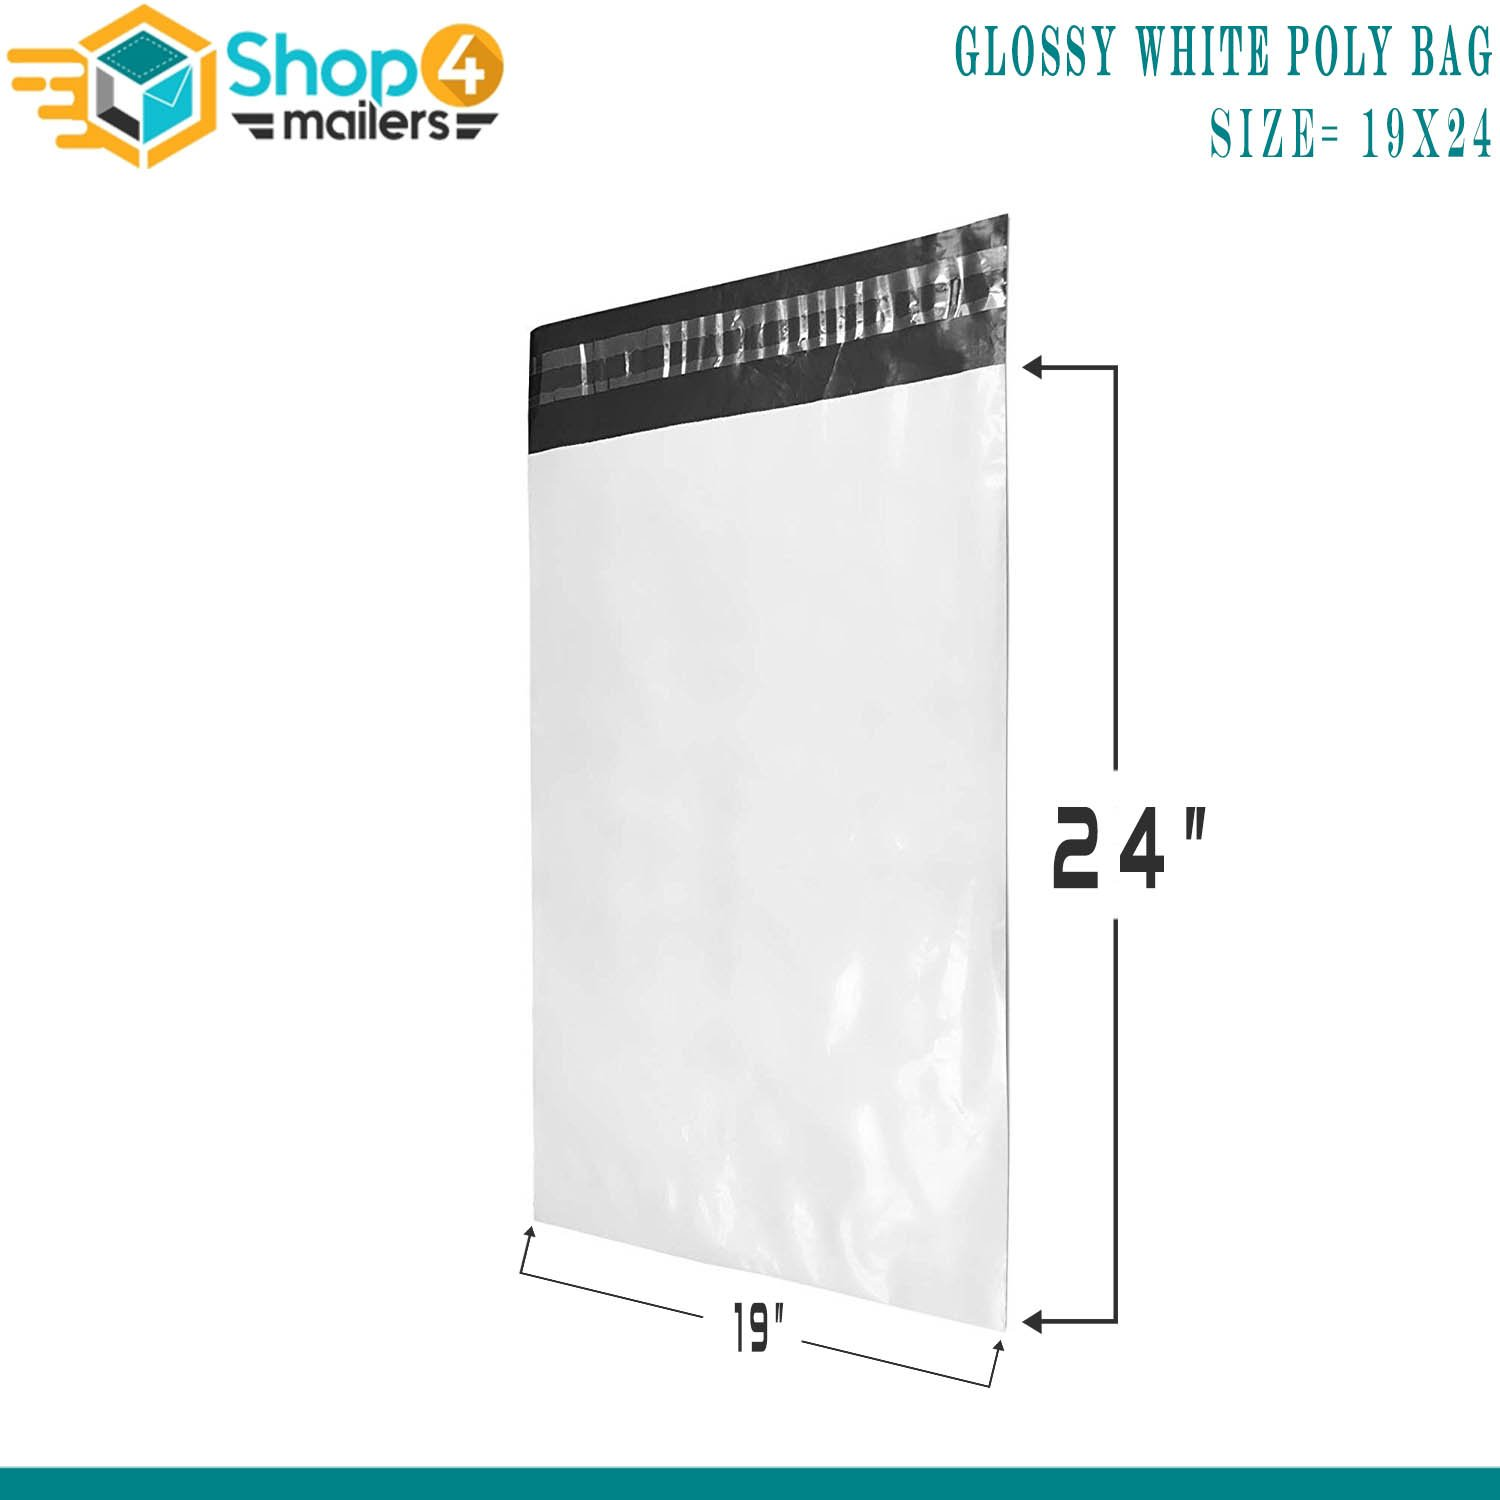 50 Pack Shop4Mailers 19 x 24 Glossy White Poly Bag Mailer Envelopes 2 Mil